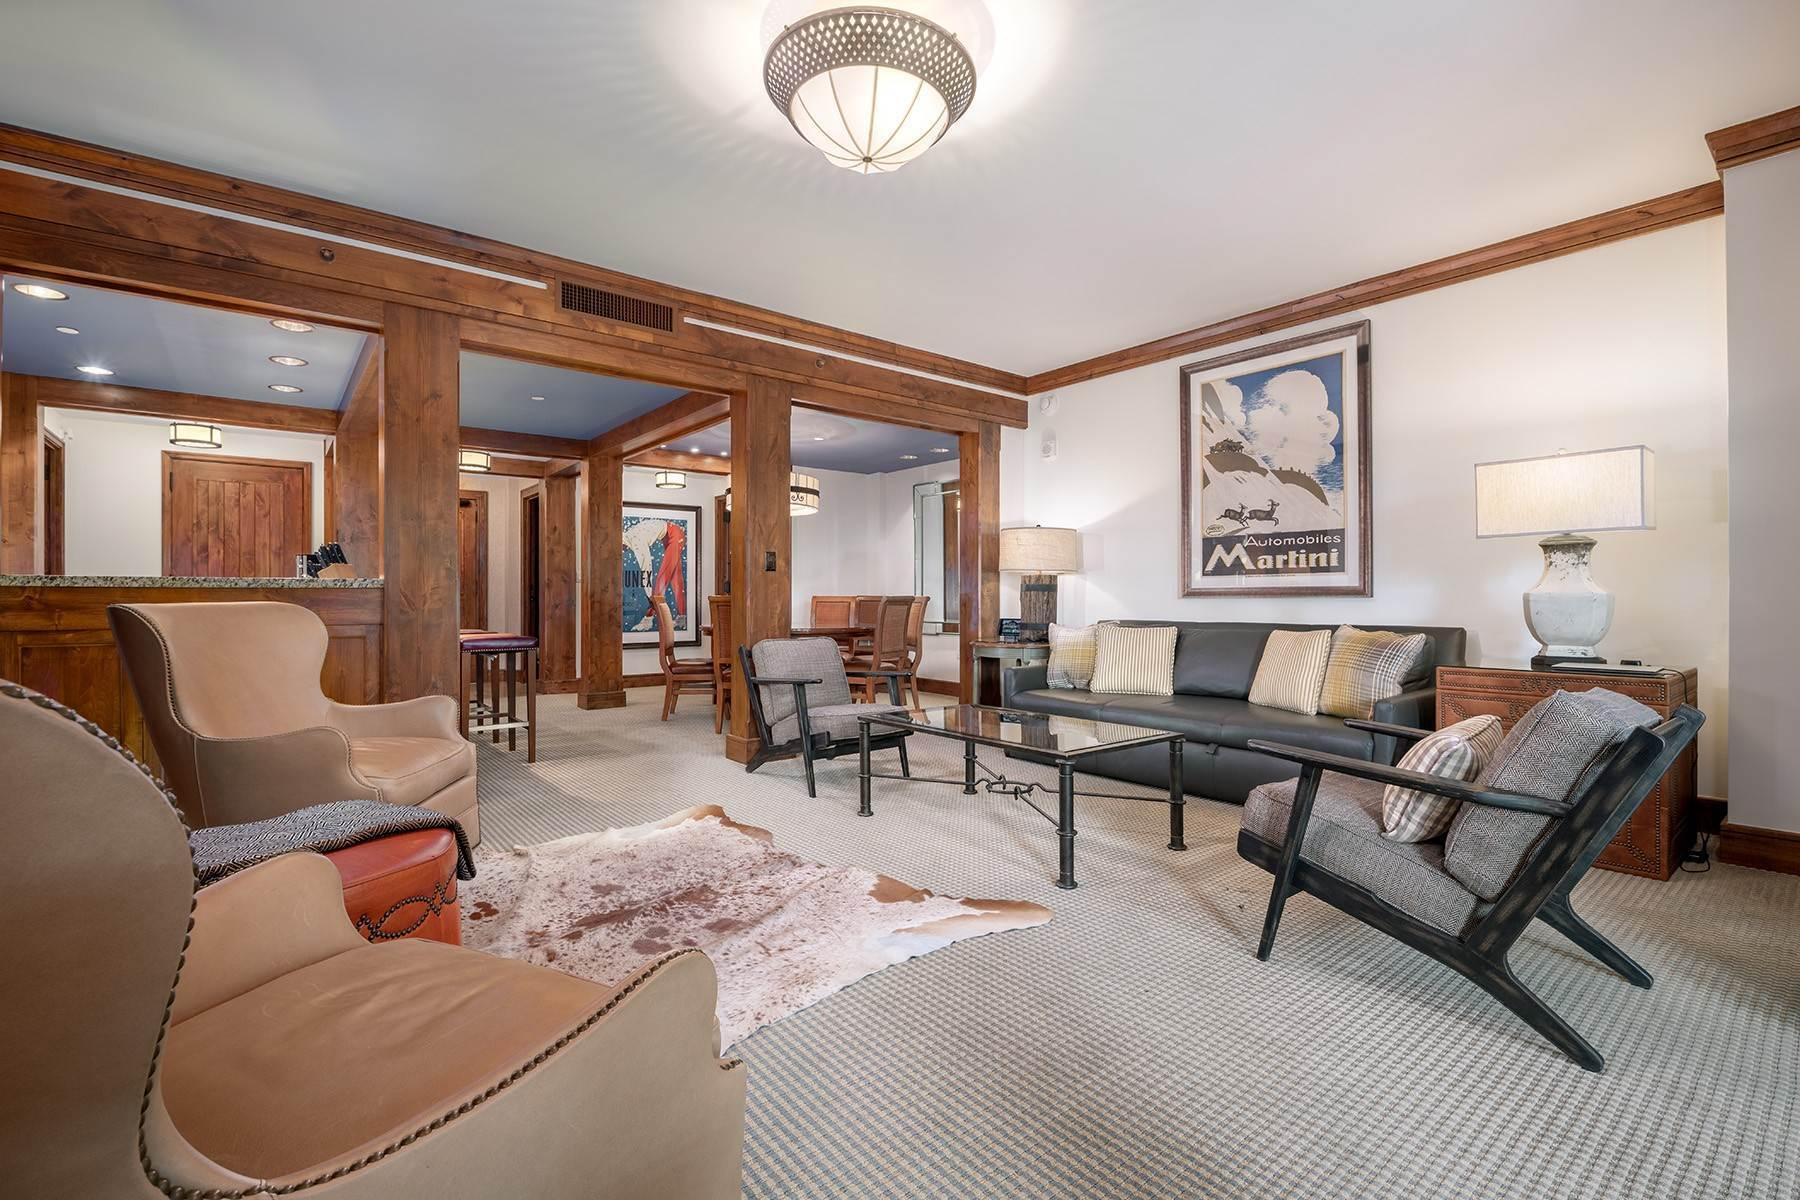 2. Condominiums for Sale at Desirable Four Seasons Private Residence 7680 Granite Loop Road, #654 Teton Village, Wyoming 83025 United States